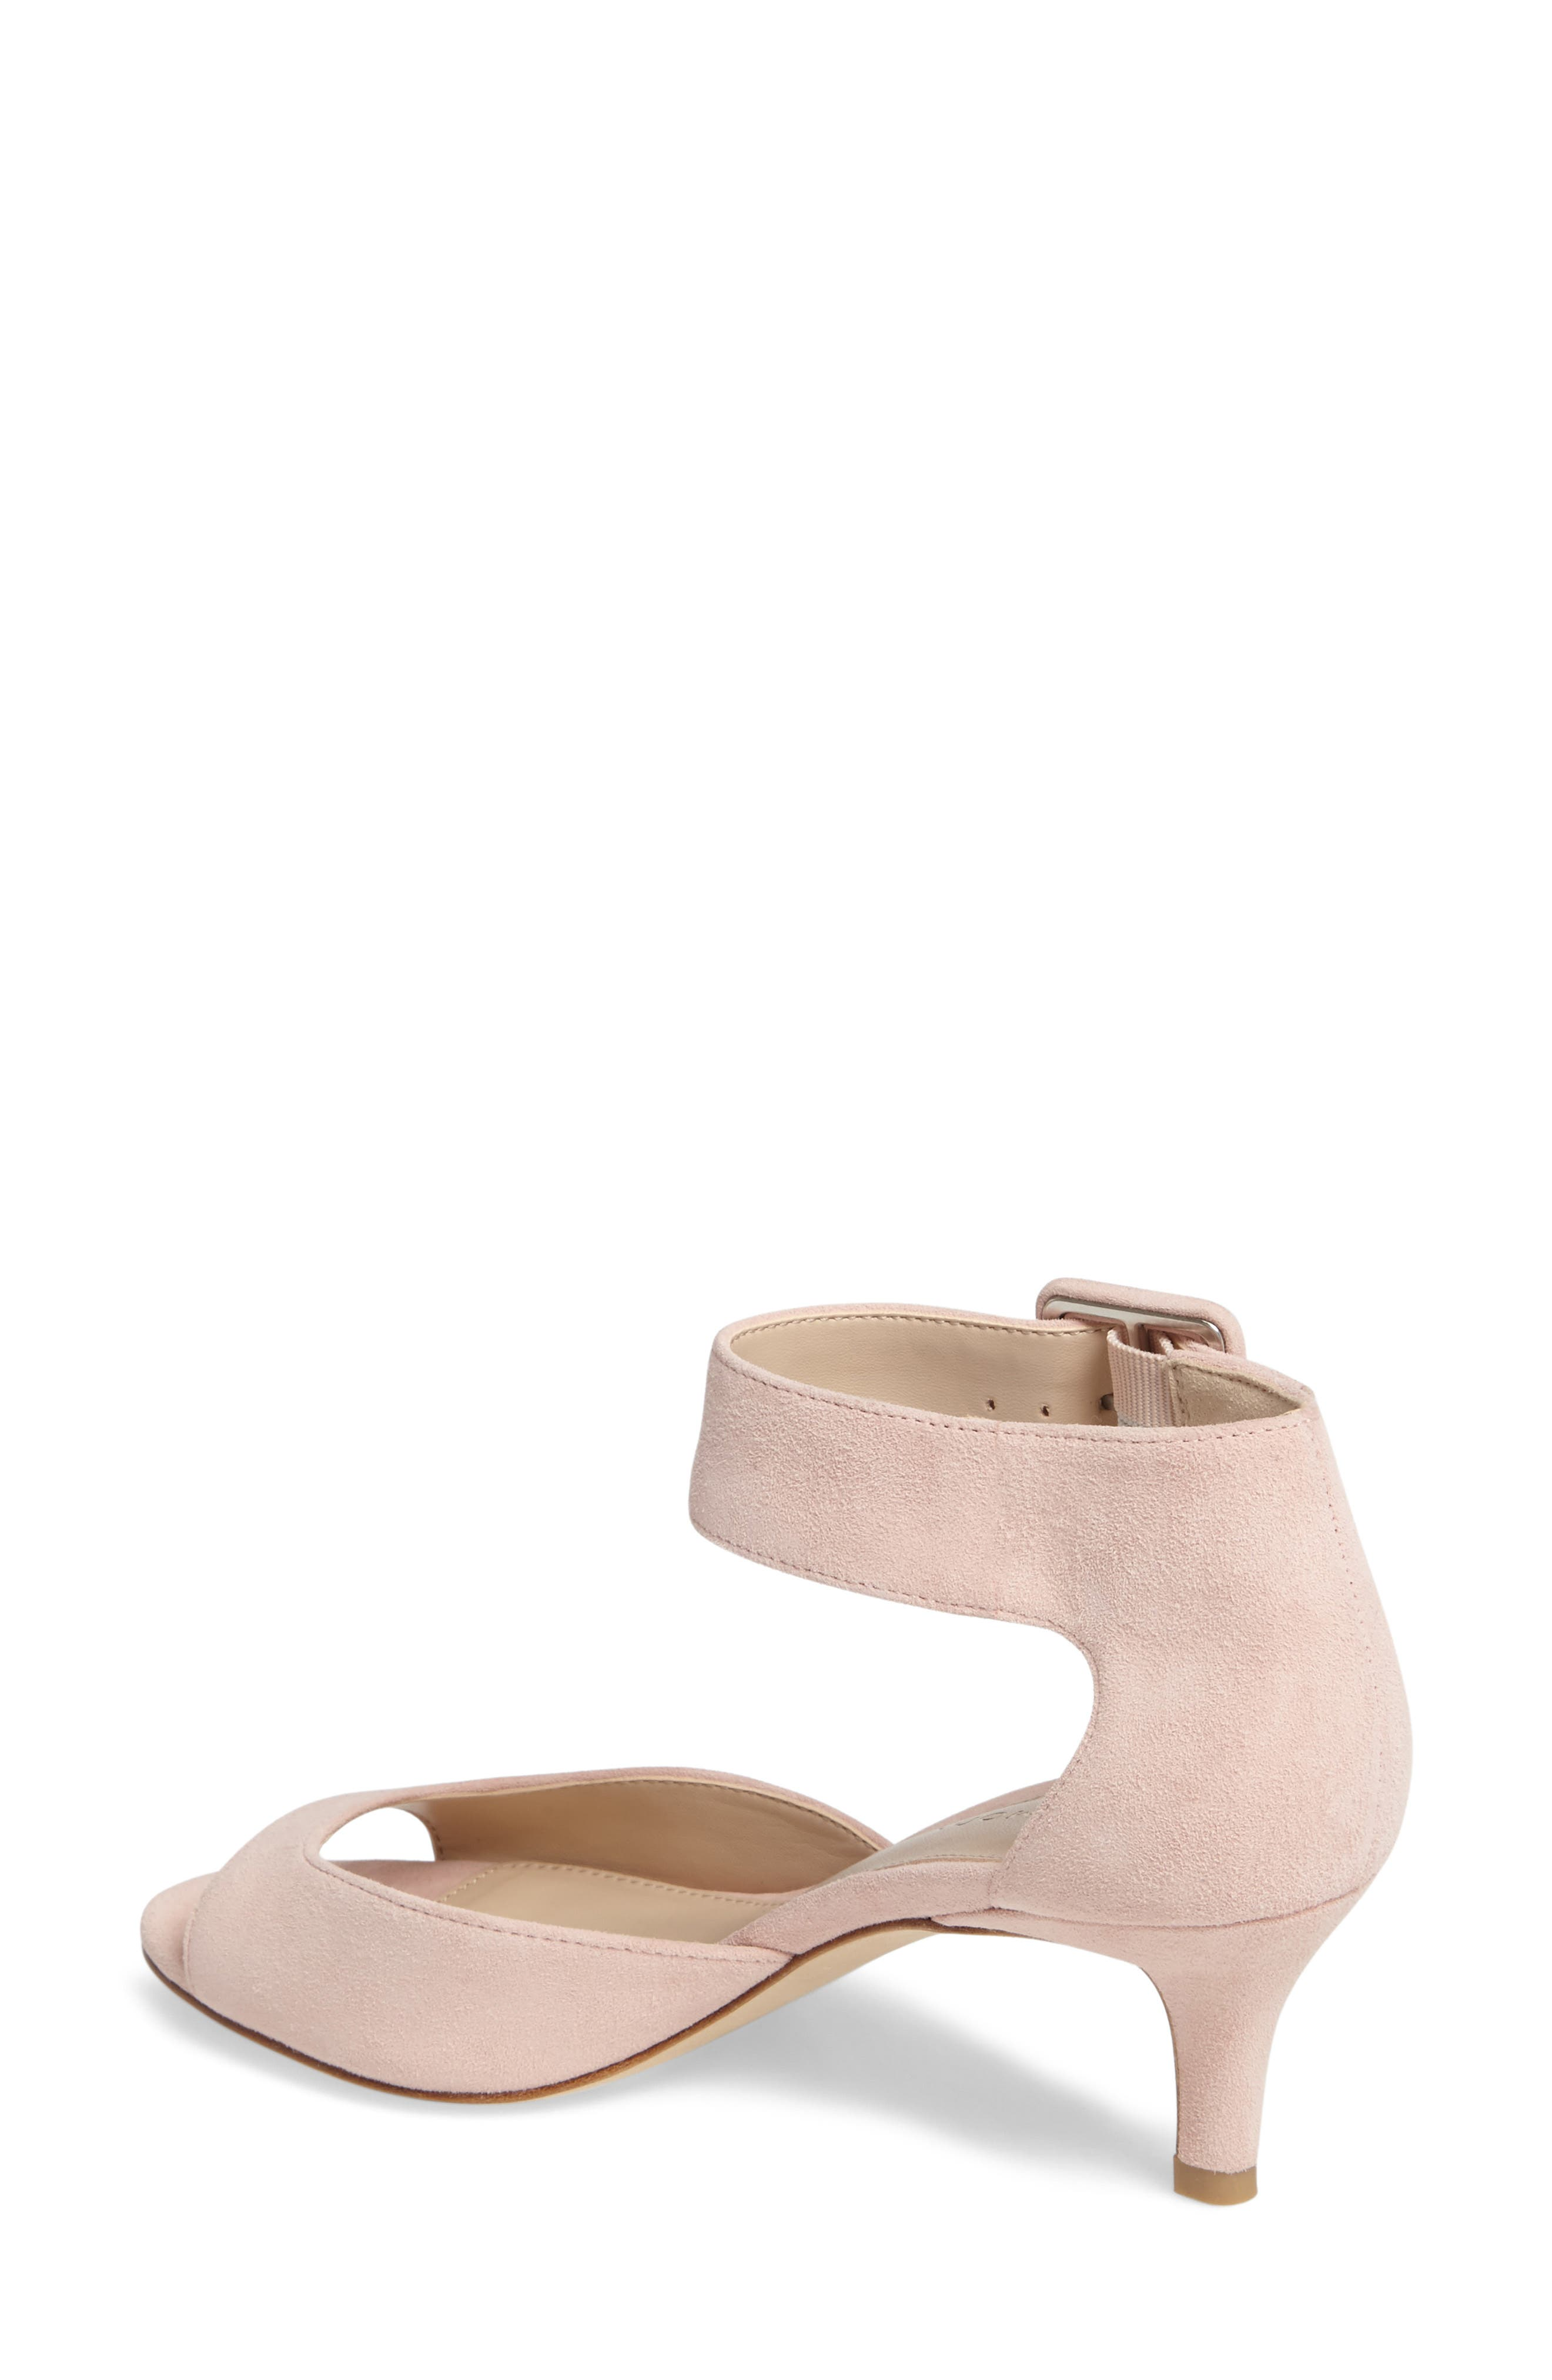 'Berlin' Ankle Strap Sandal,                             Alternate thumbnail 2, color,                             Pale Pink Leather